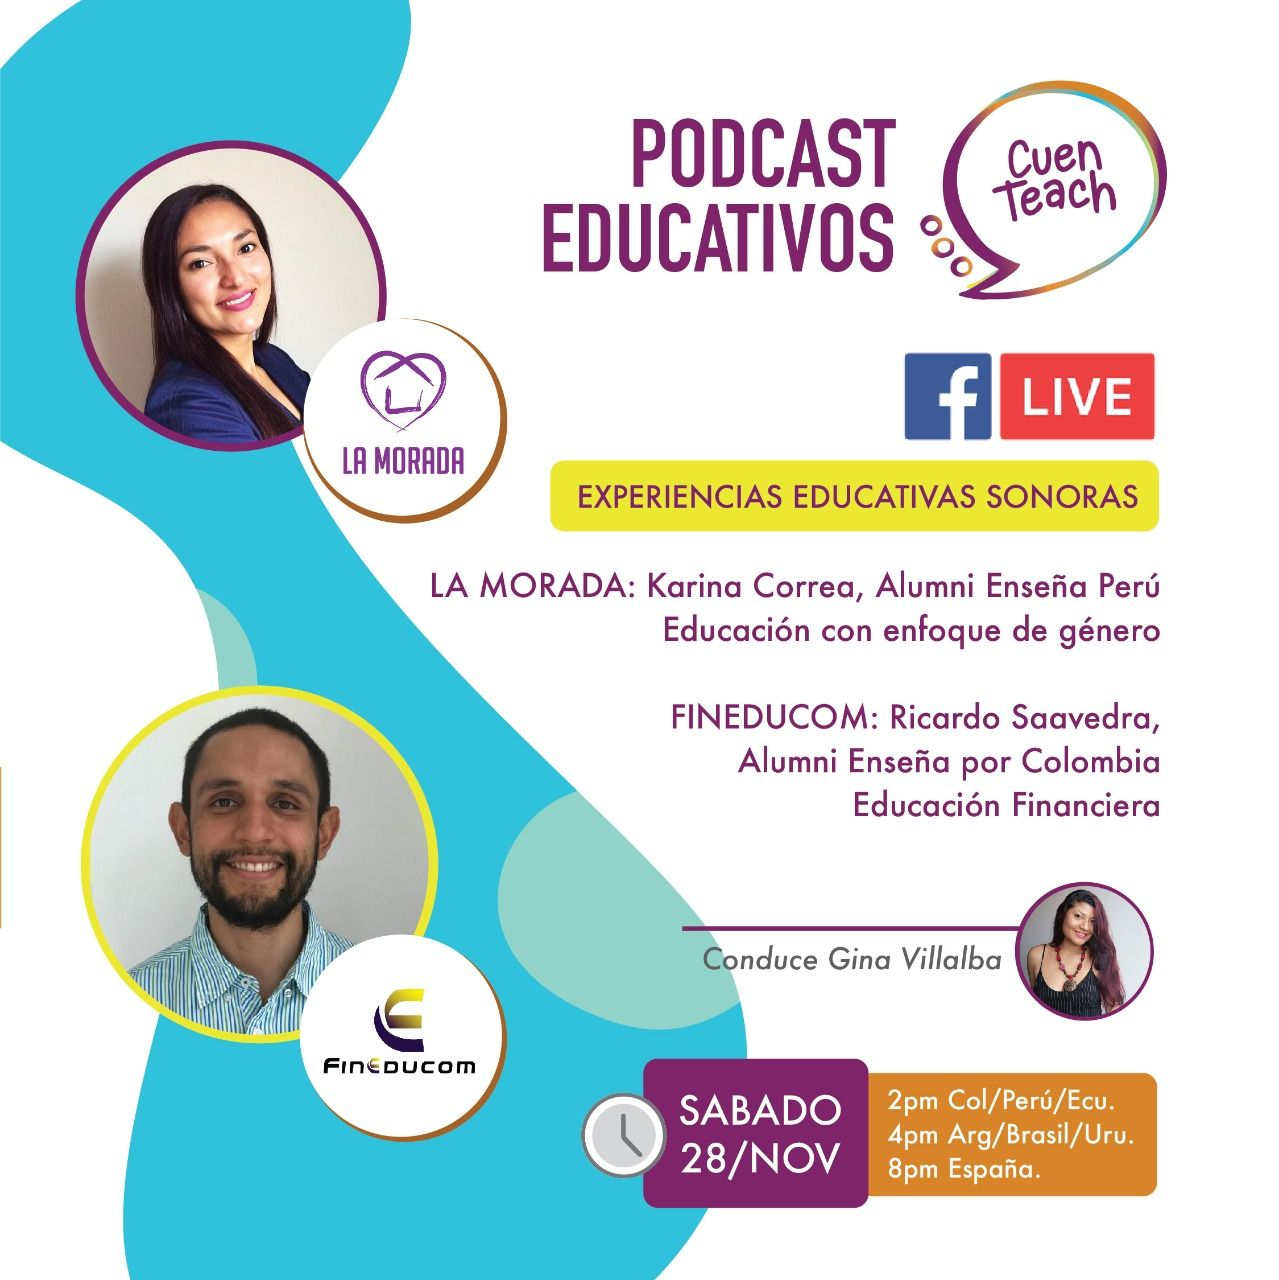 Entrevista a Podcast Educativos - La morada y Fineducom